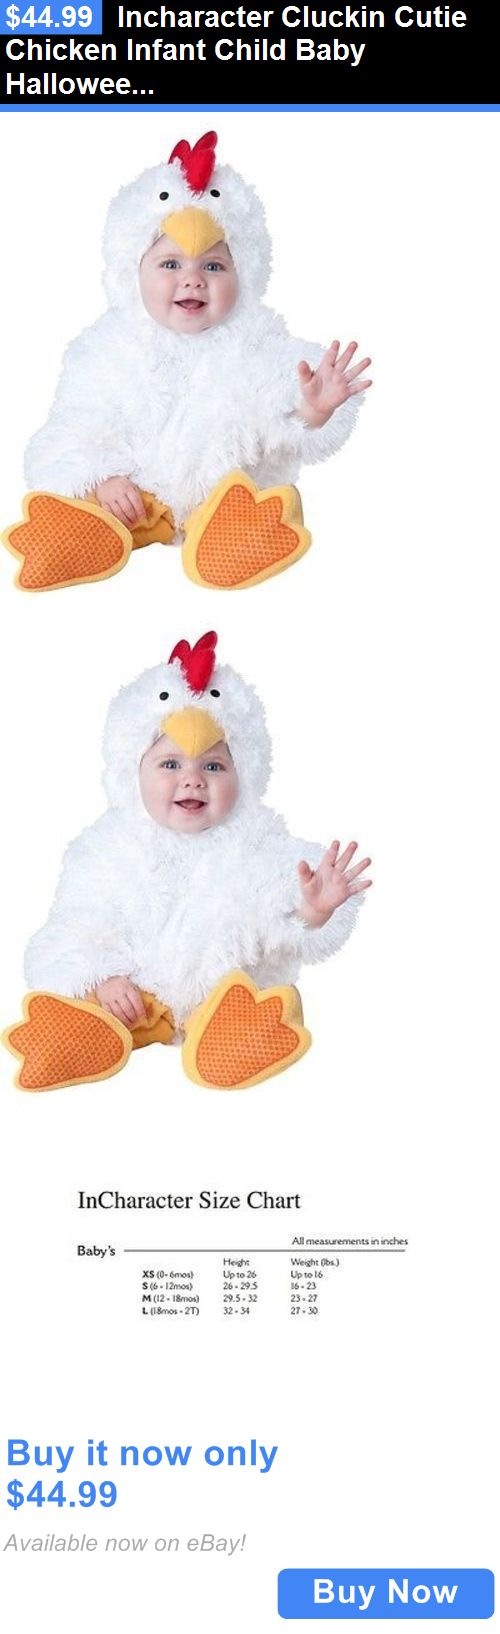 Kids Costumes: Incharacter Cluckin Cutie Chicken Infant Child Baby Halloween Costume 6058 BUY IT NOW ONLY: $44.99